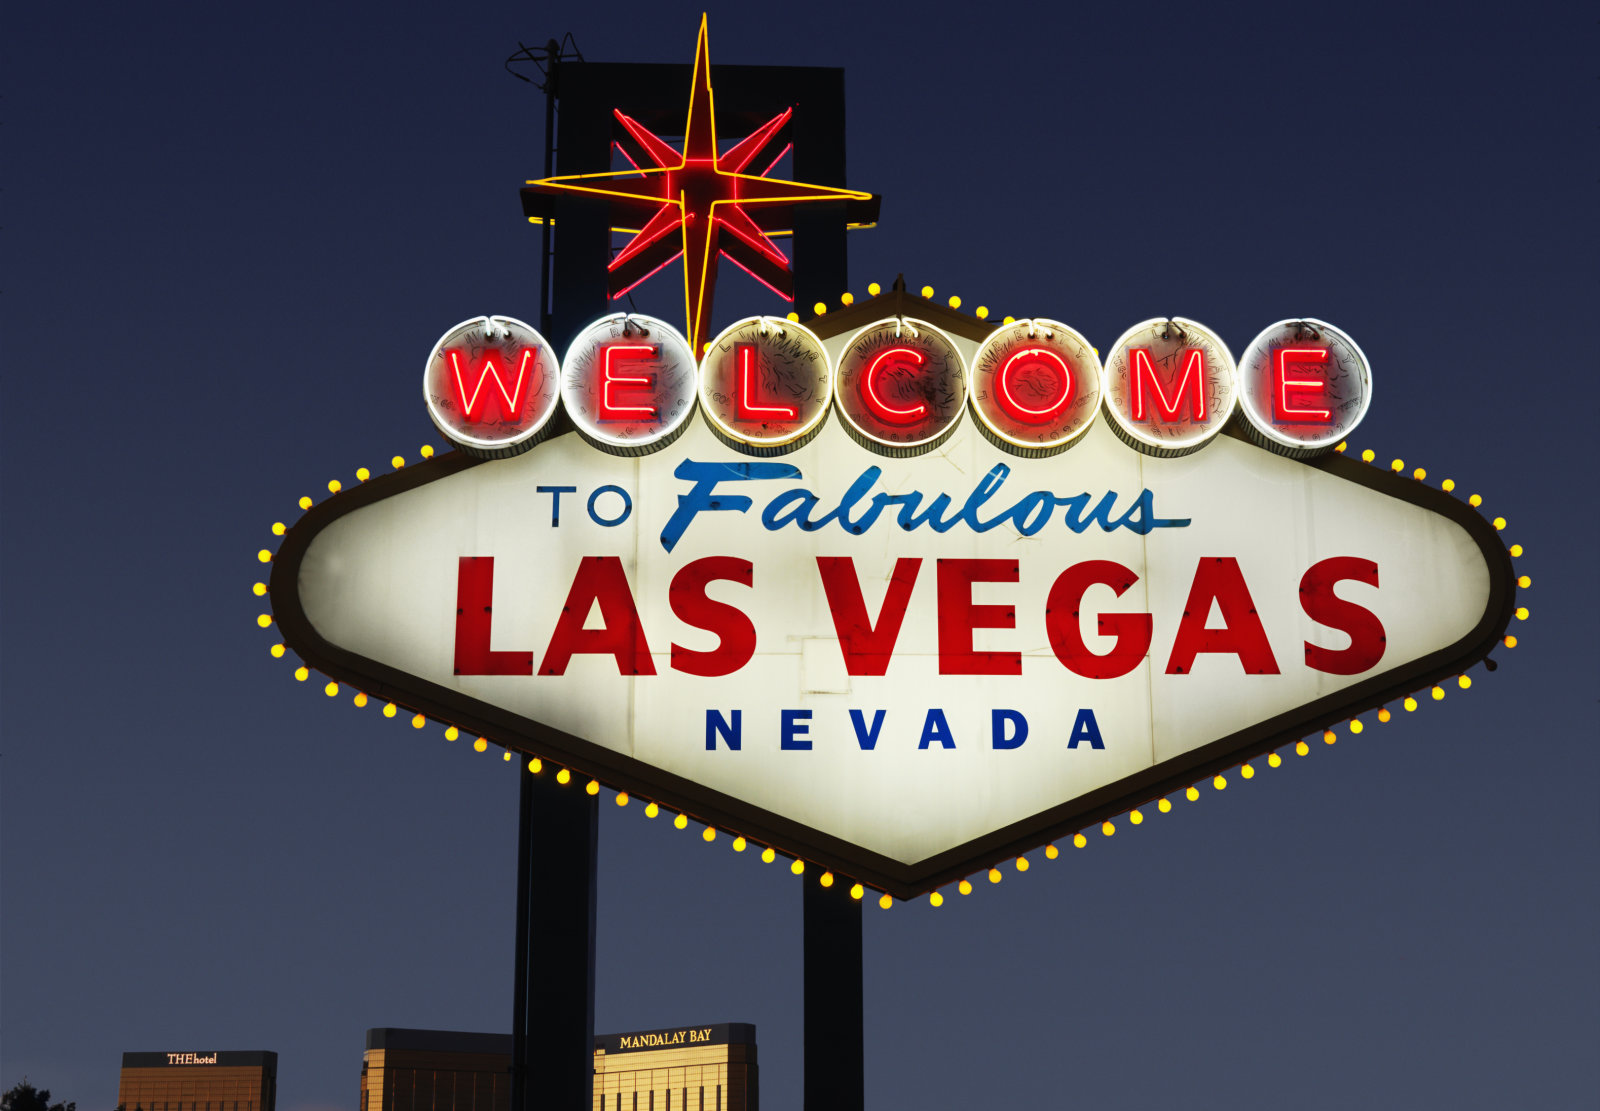 Lighted Las Vegas, Nevada welcome sign with night sky.